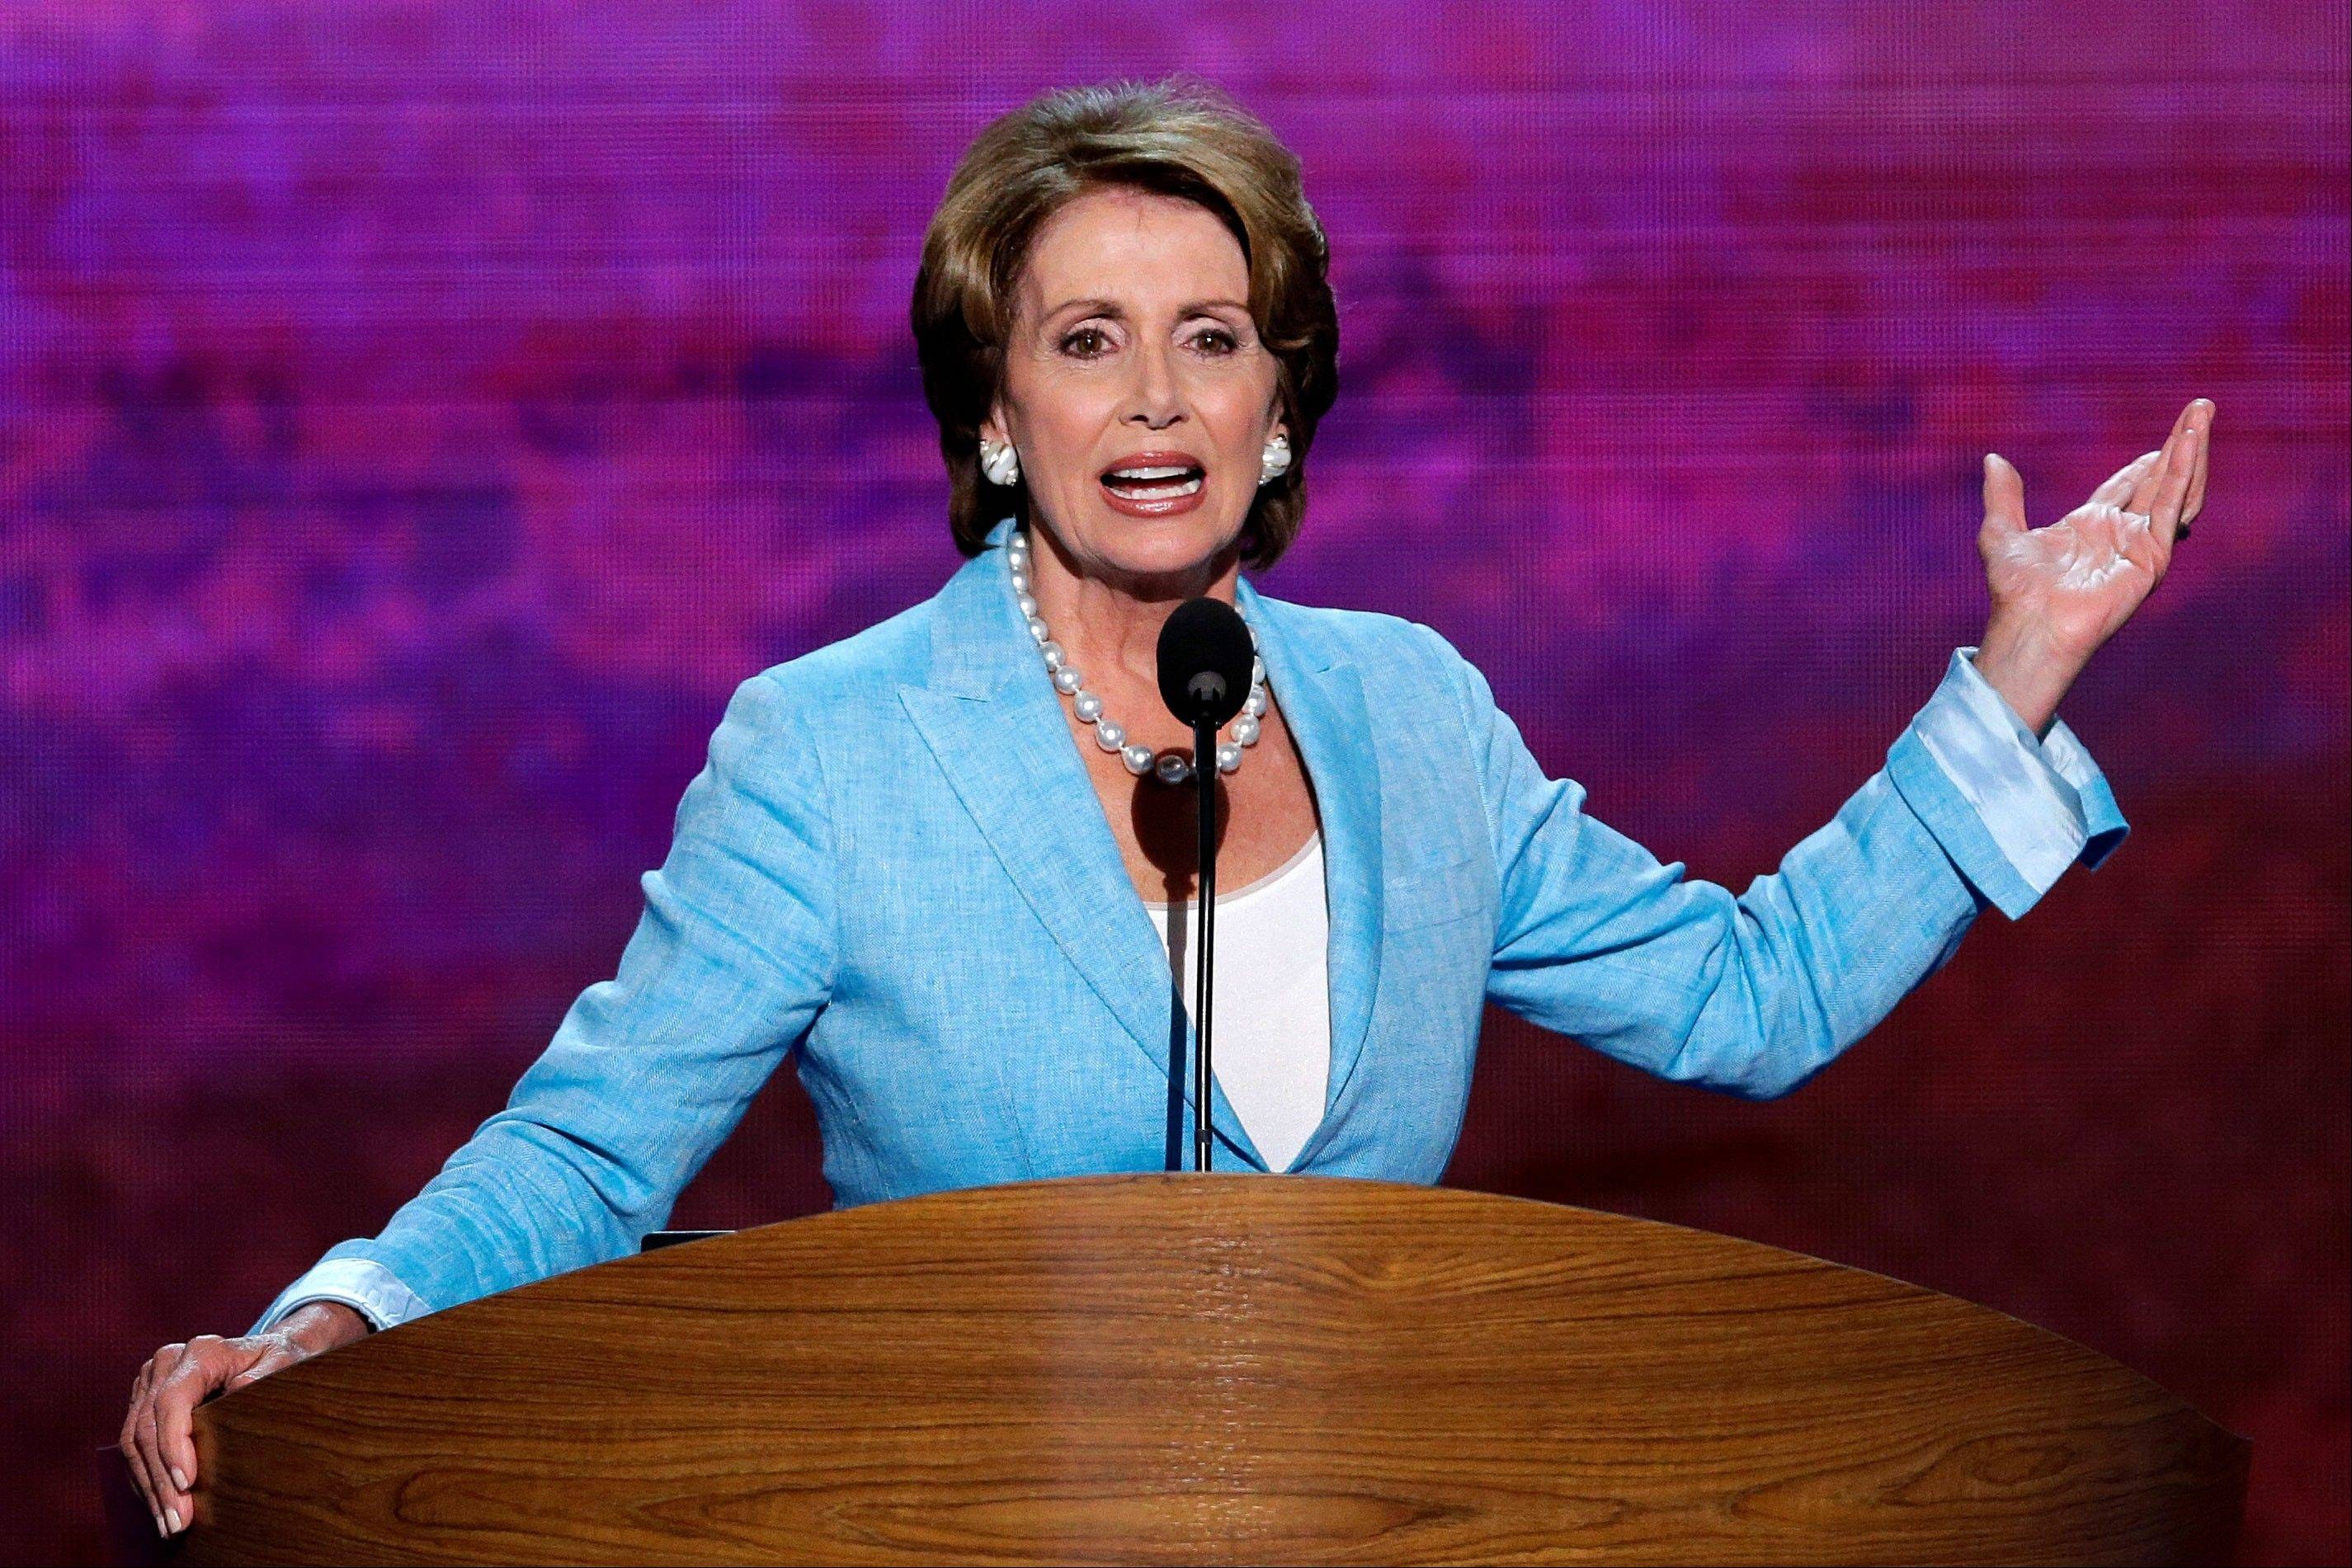 House Minority Leader Nancy Pelosi addresses the Democratic National Convention in Charlotte, N.C., Wednesday.